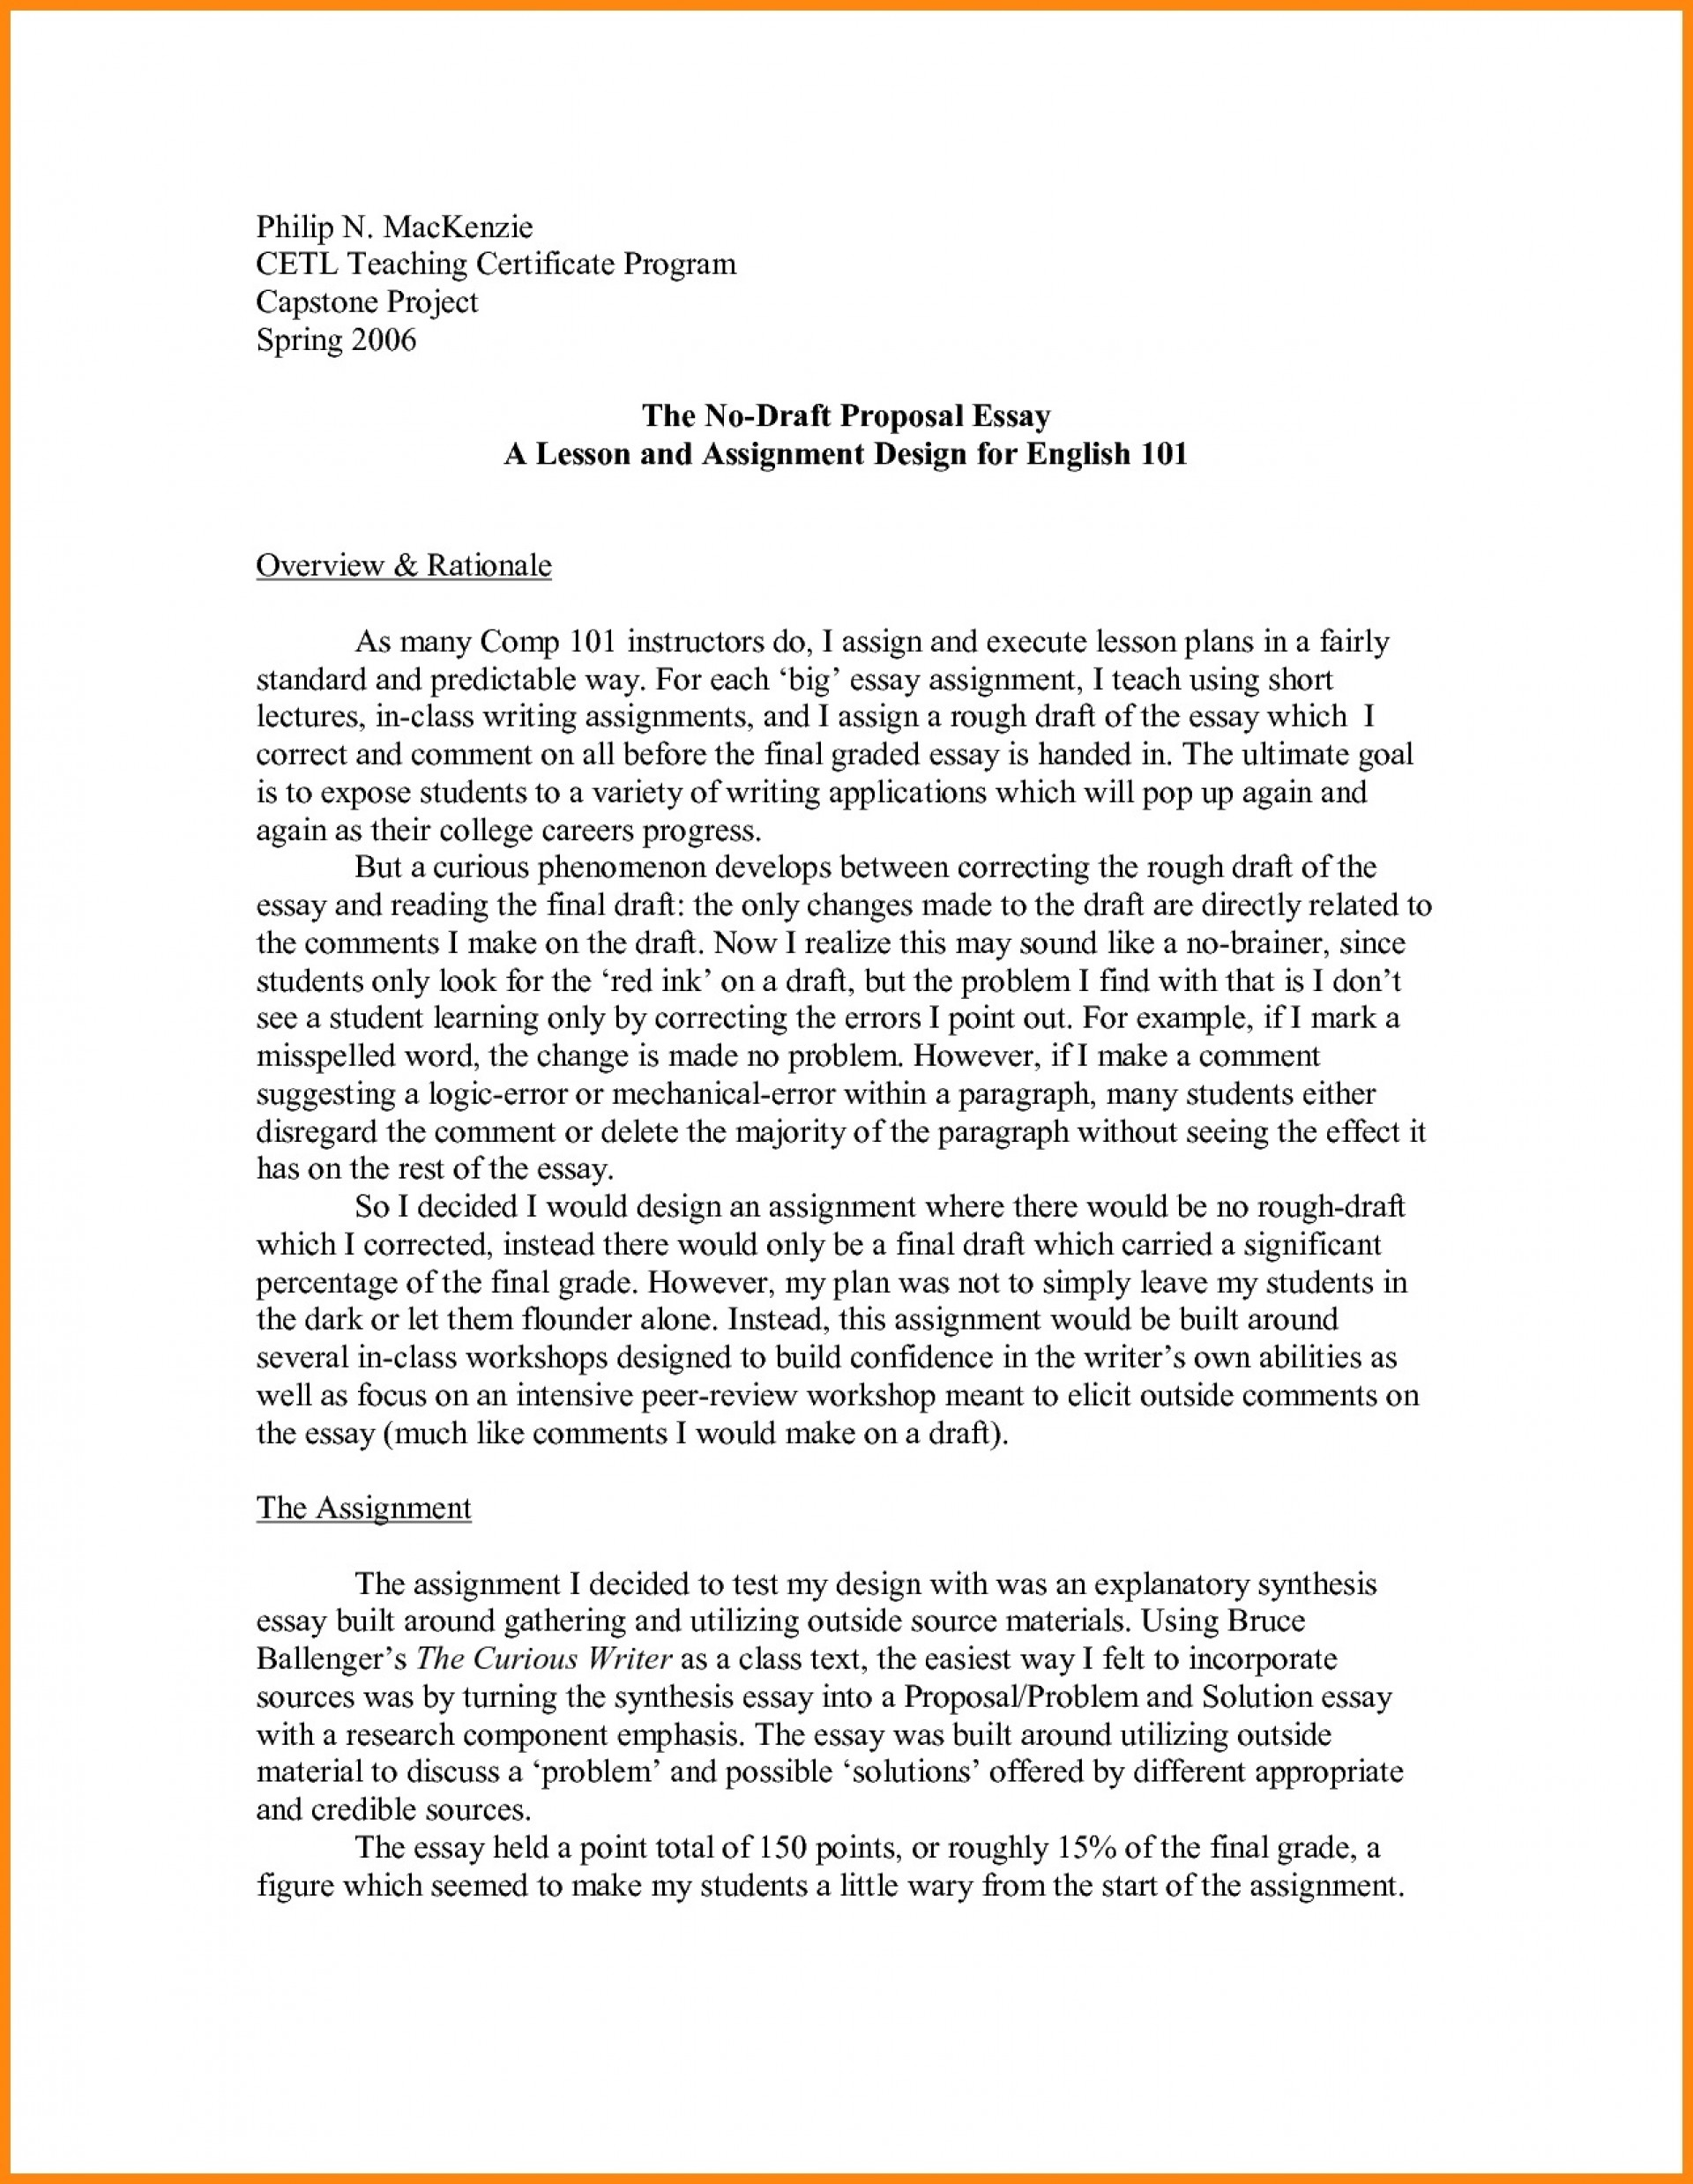 019 Research Paper Papers Topics For Finance Topic Proposal Example Essay At Phenomenal High School Students About Elementary Education Hot In Computer Science 1920